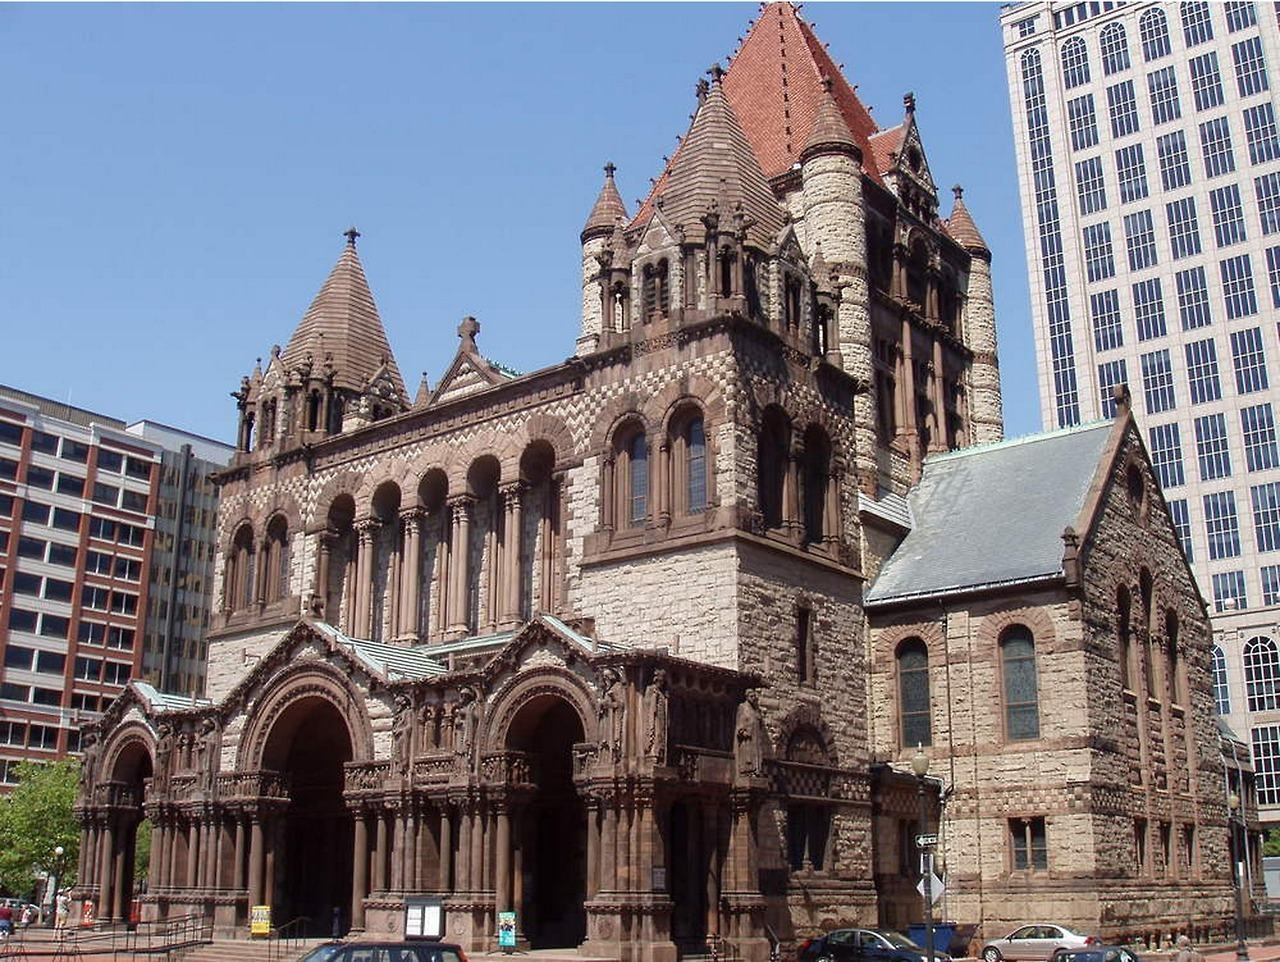 Created by architect H.H. Richardson, Trinity Church was the first example of the Richardsonian Romanesque style, which was later used in churches, city halls, and county courthouses across America. Editor Anulfo Baez recaps its inclusion in the new PBS special 10 Buildings That Changed America [continued at Big Red & Shiny…] Image via Wikimedia Commons user: MatthiasB